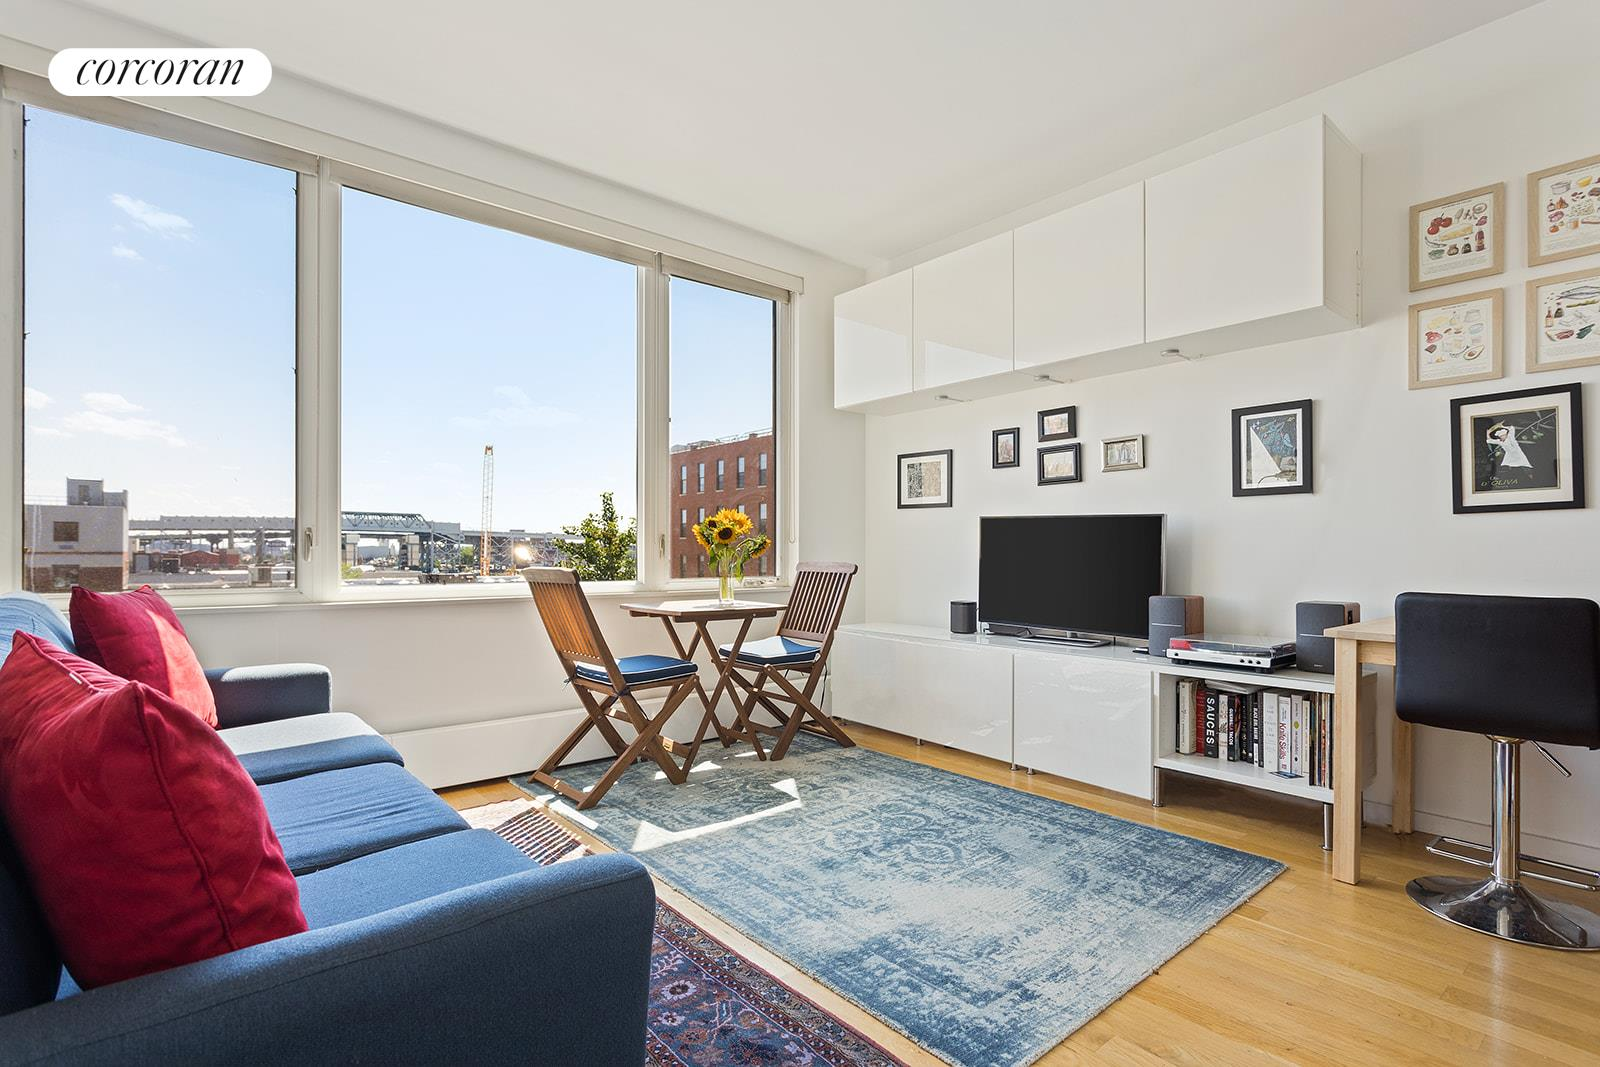 Apartment for sale at 103 3rd Street, Apt 4